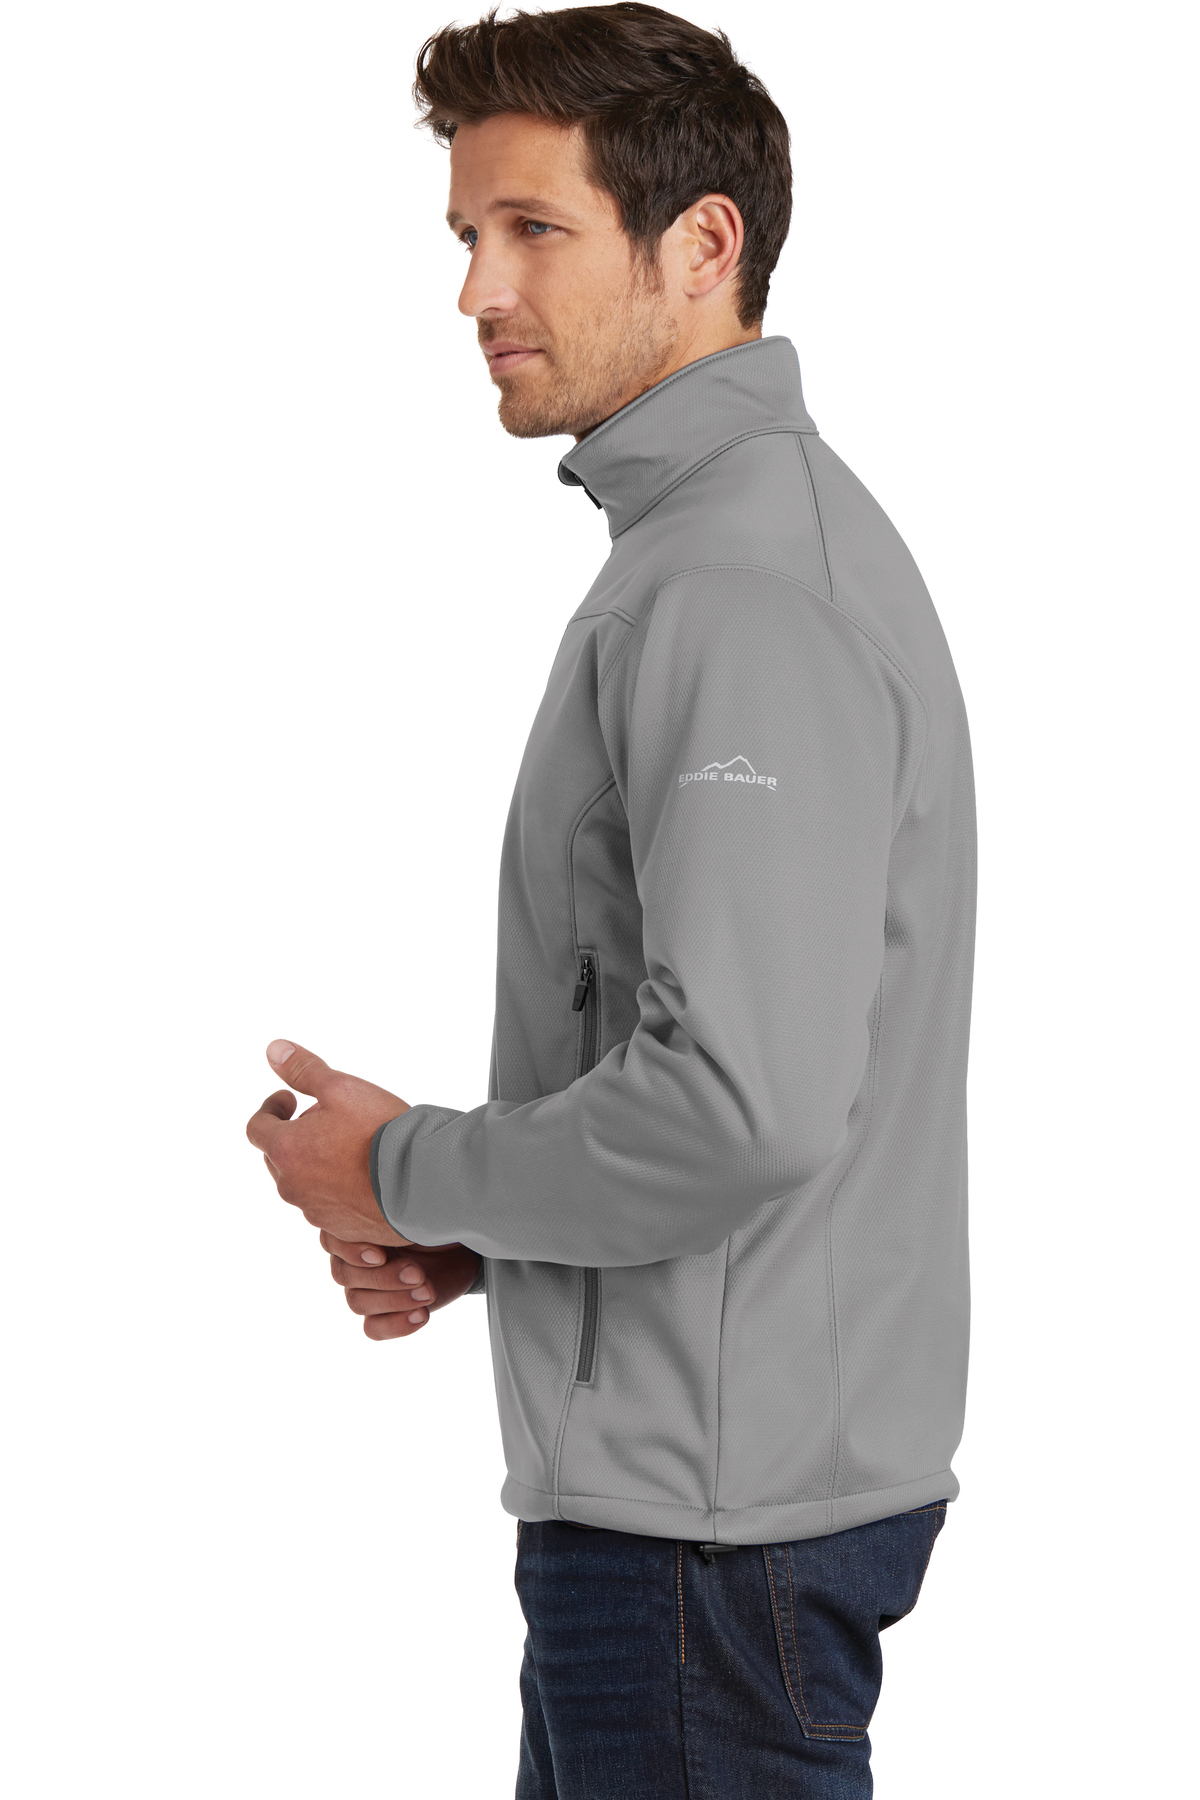 Ed Bauer Weather Resist Soft Shell Jacket